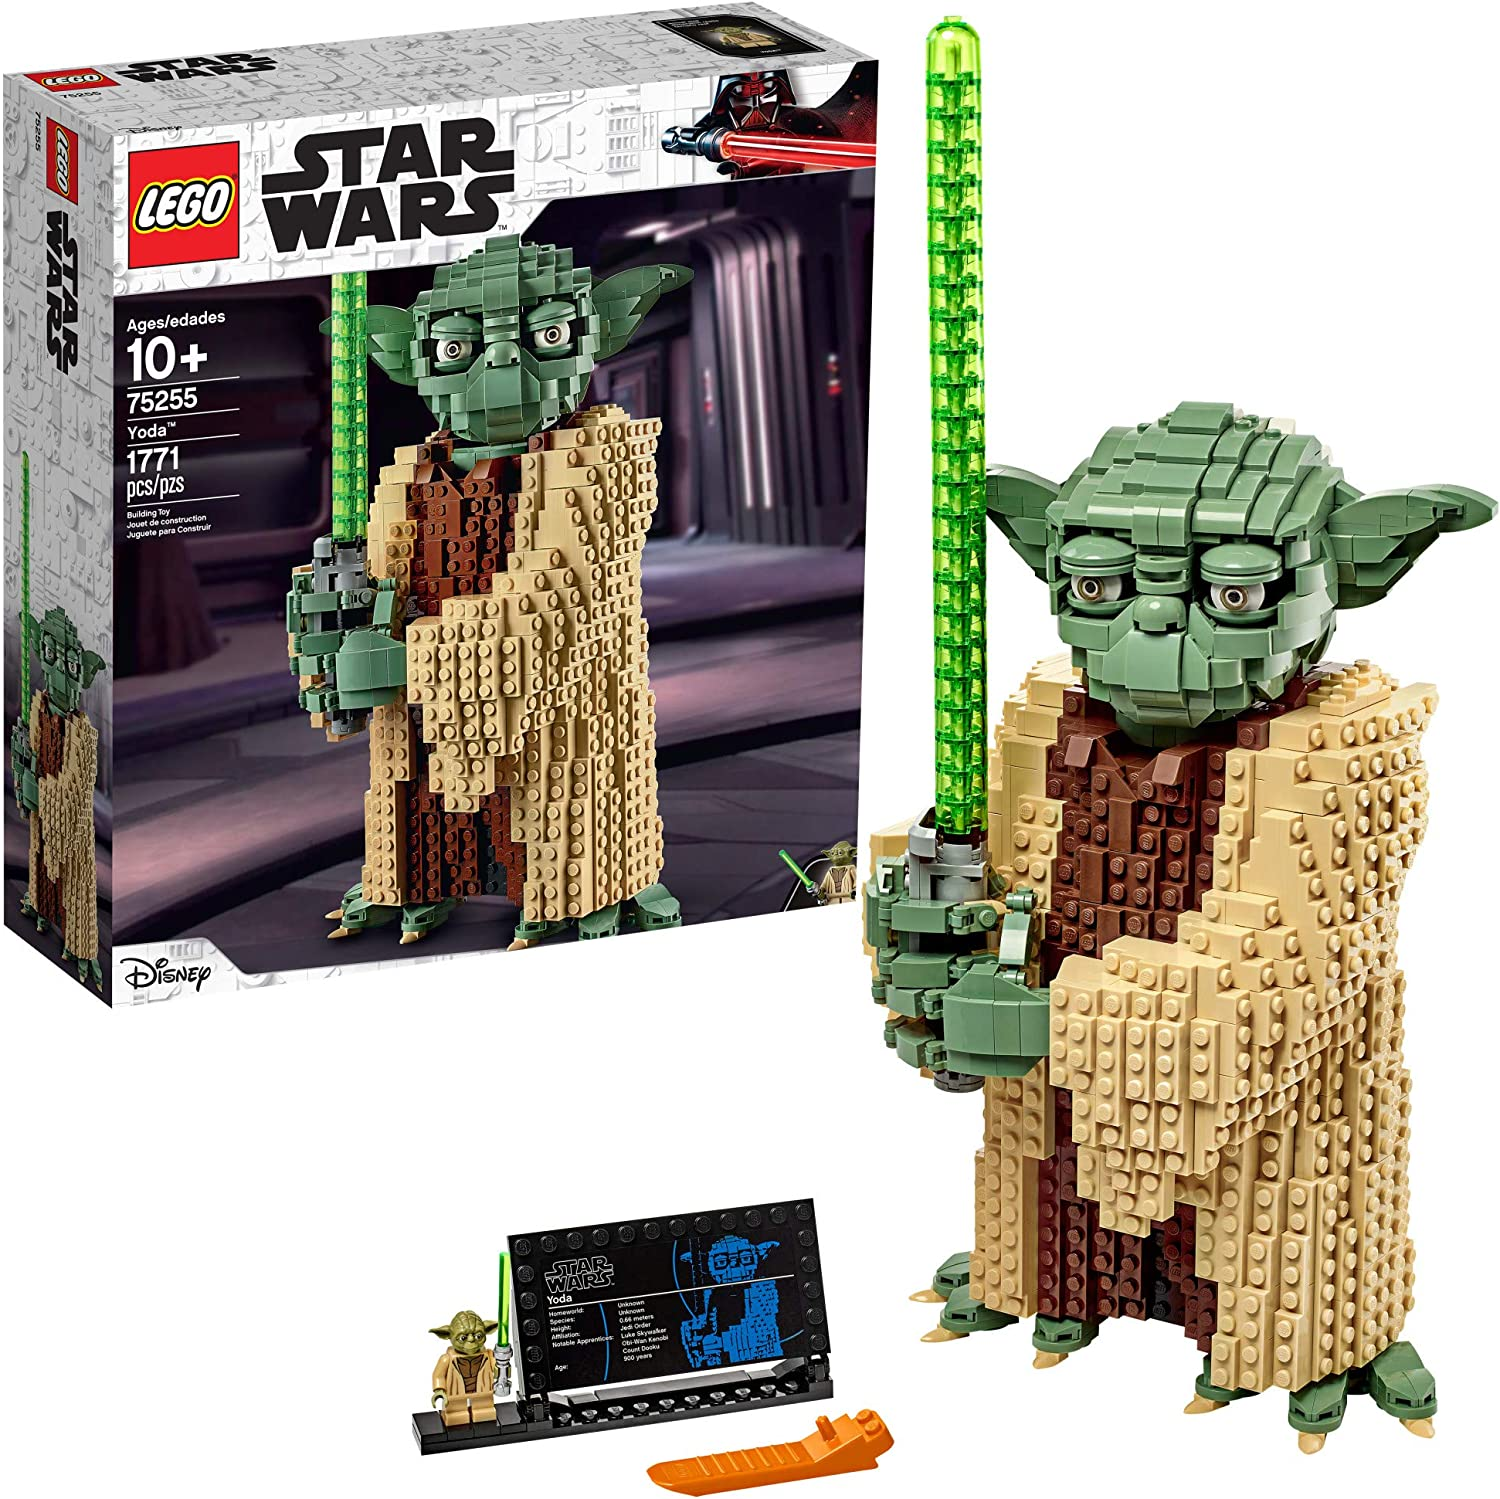 LEGO Star Wars - Attack of the Clones Yoda